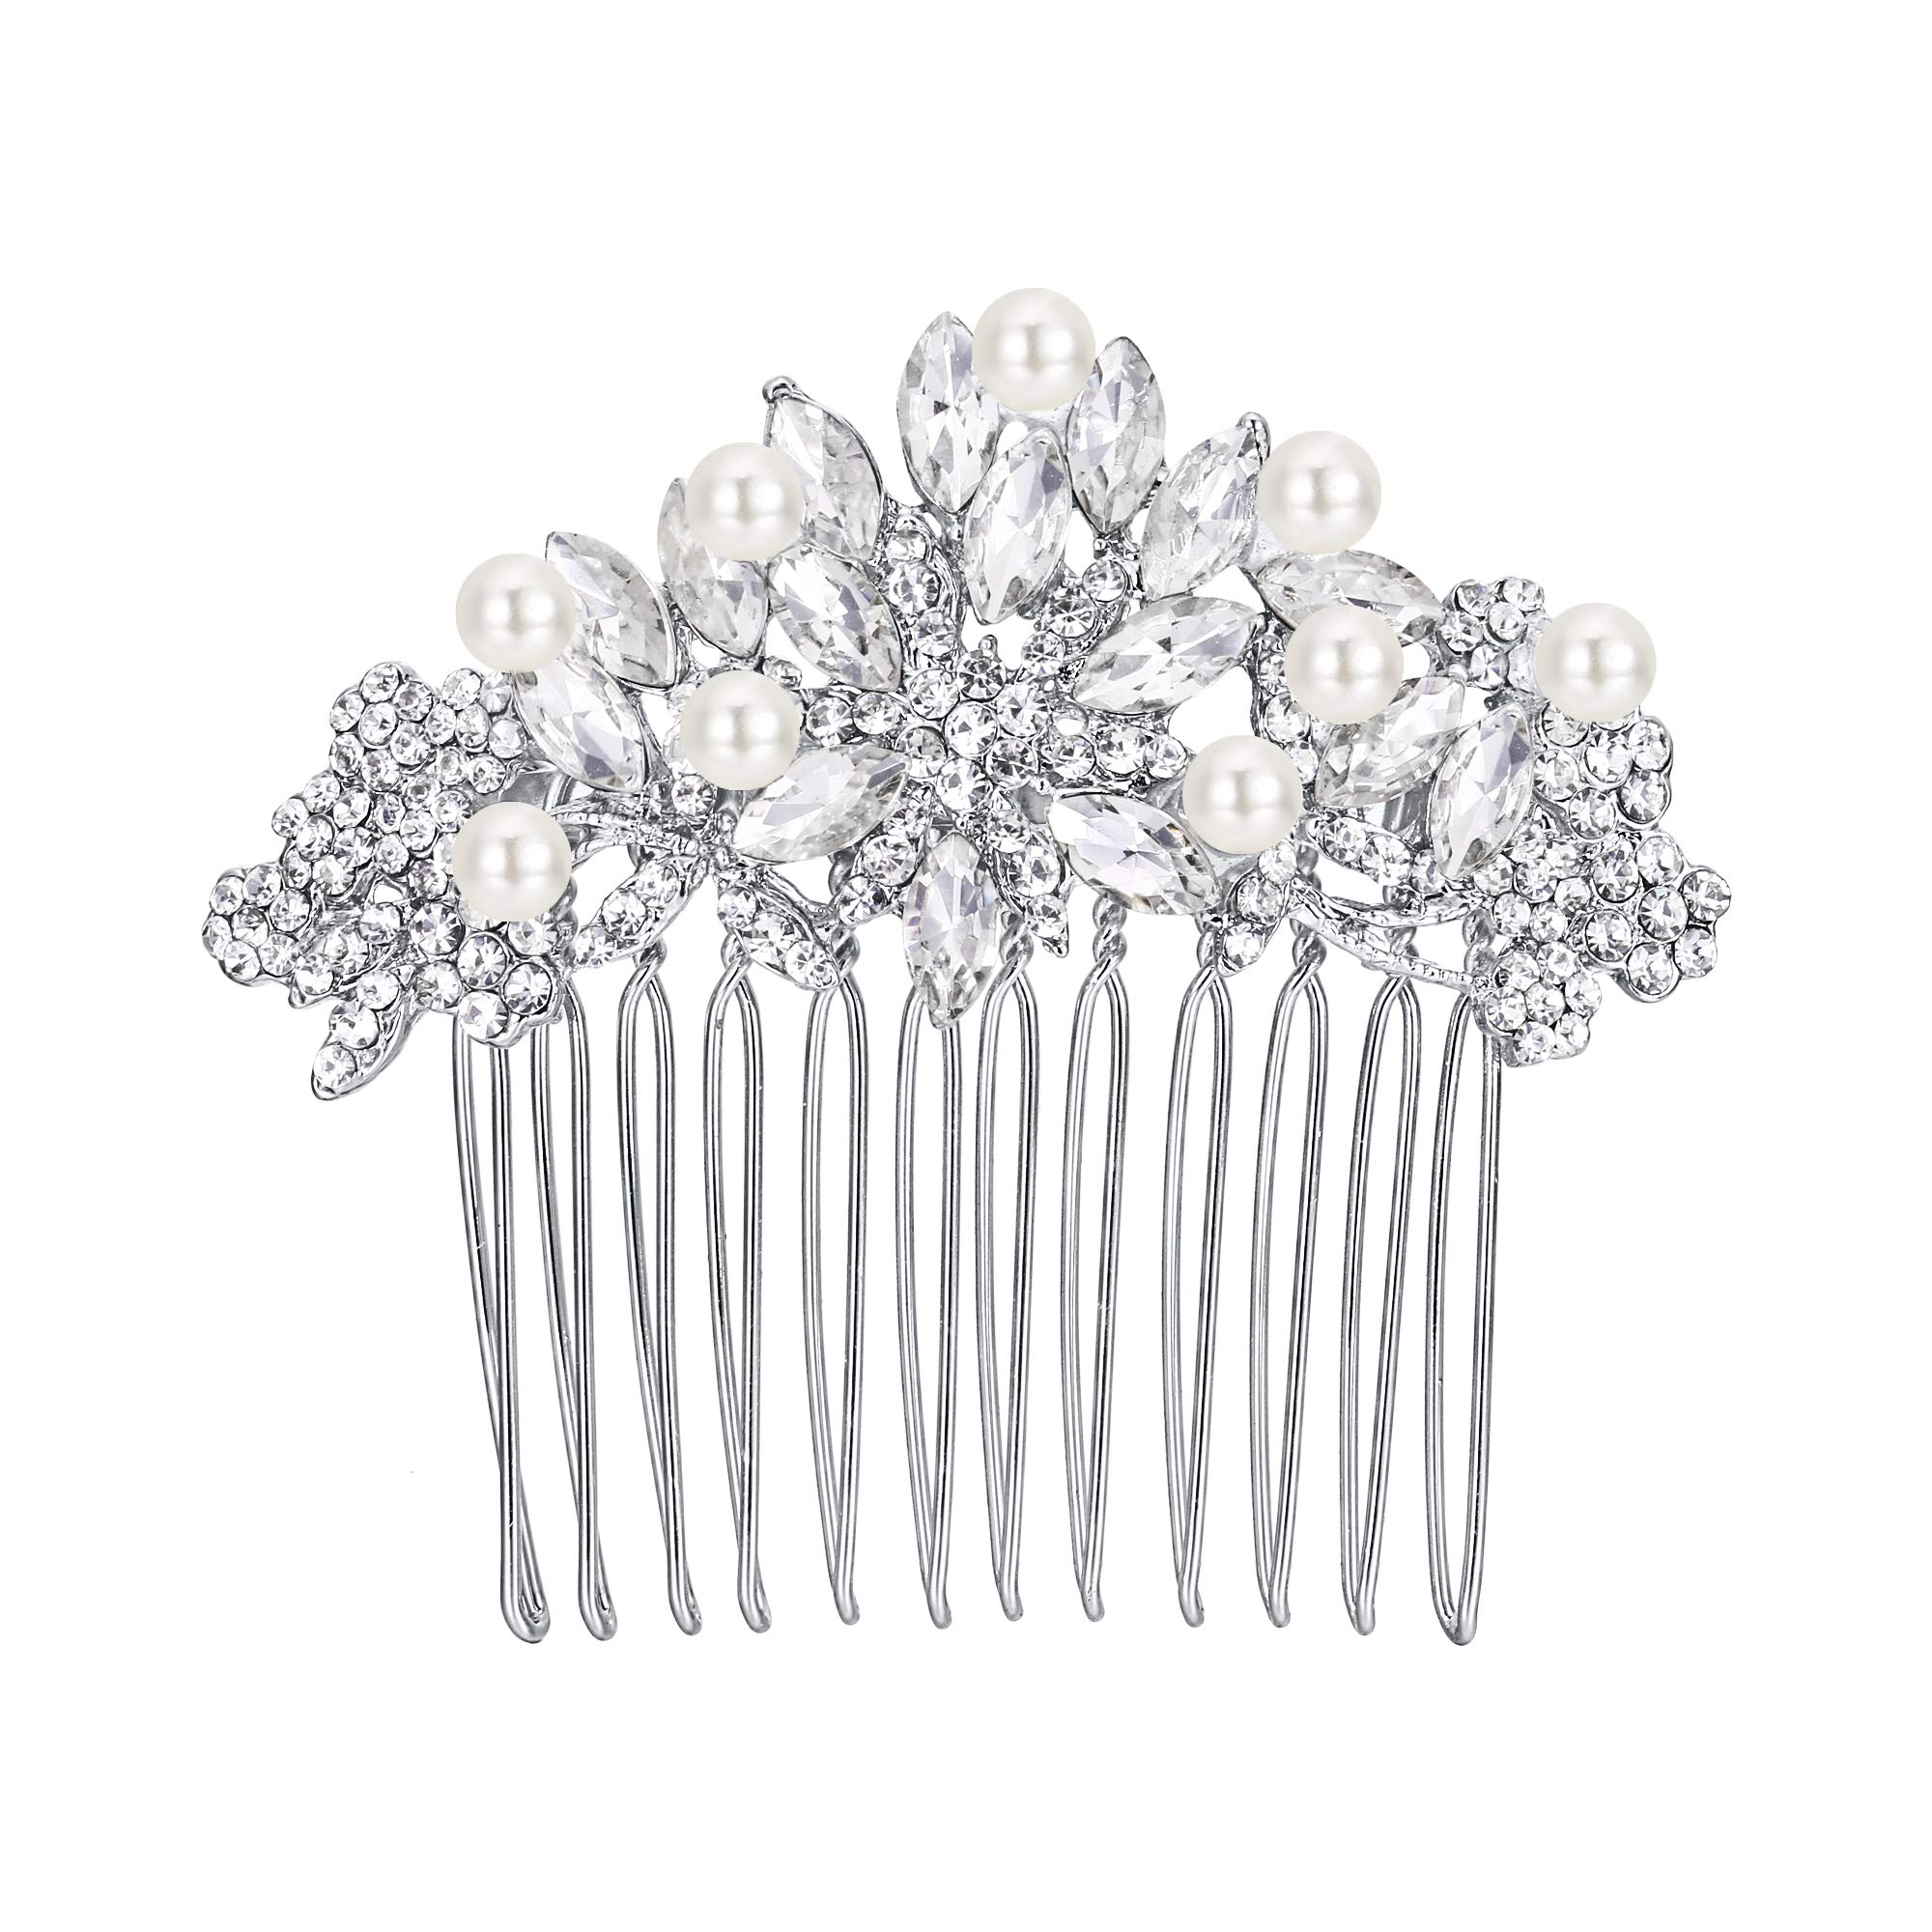 EVER FAITH Silver-Tone Austrian Crystal Cream Simulated Pearl Bridal Lots Leaves Flowers Hair Comb Clear by EVER FAITH